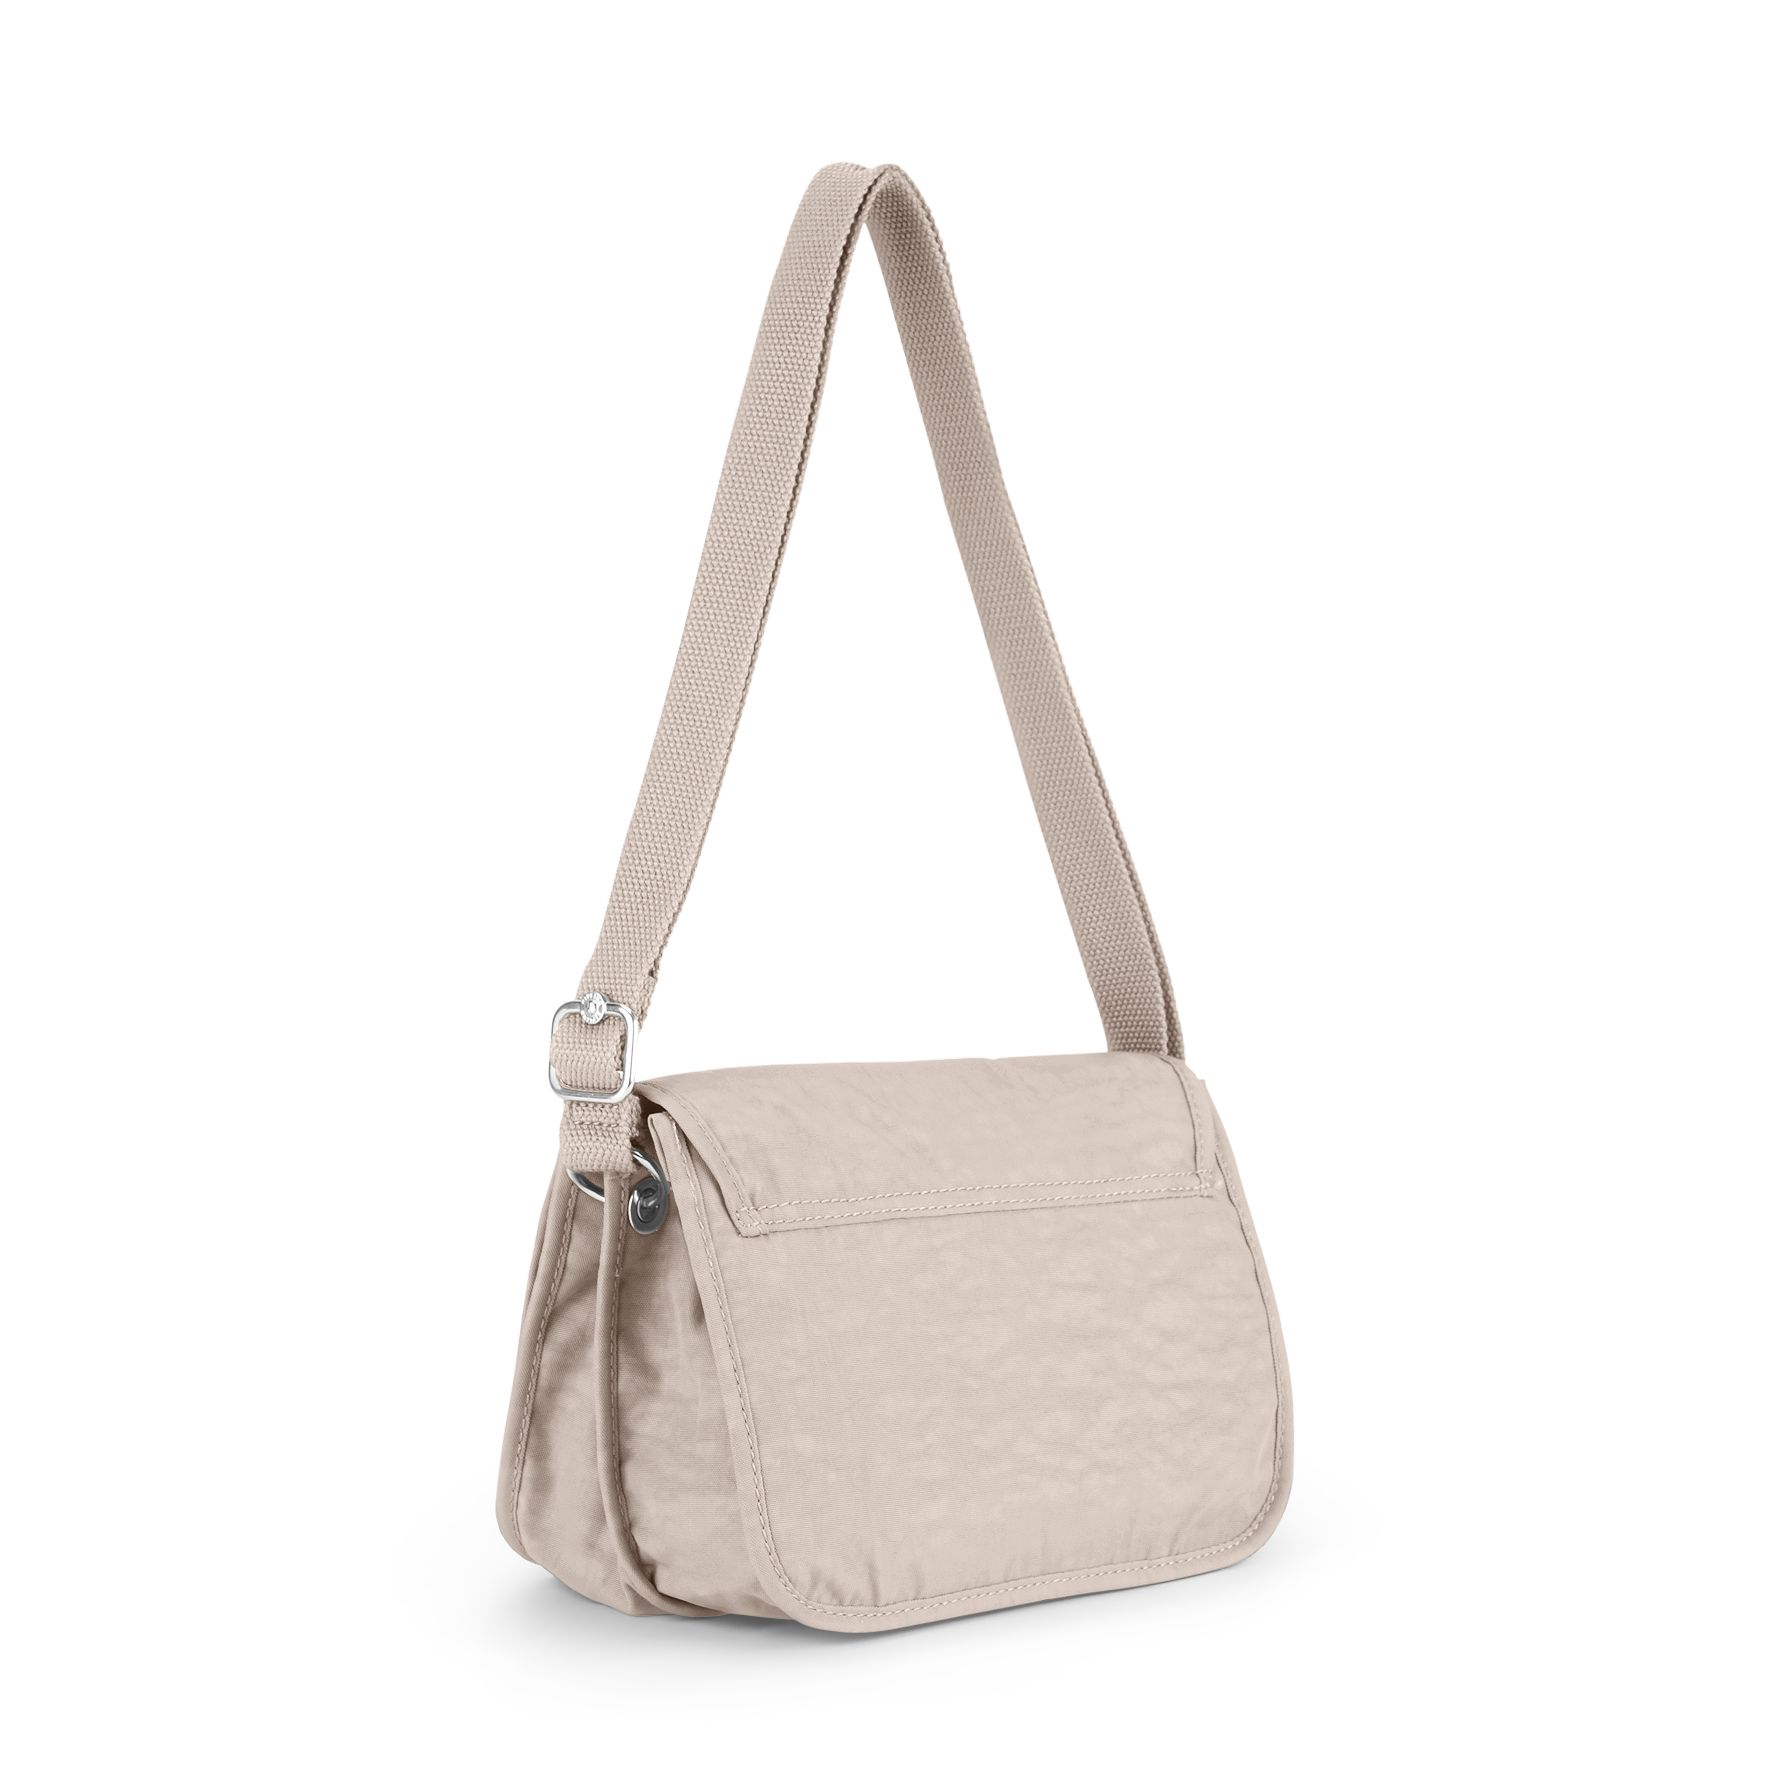 Louiza small shoulder bag